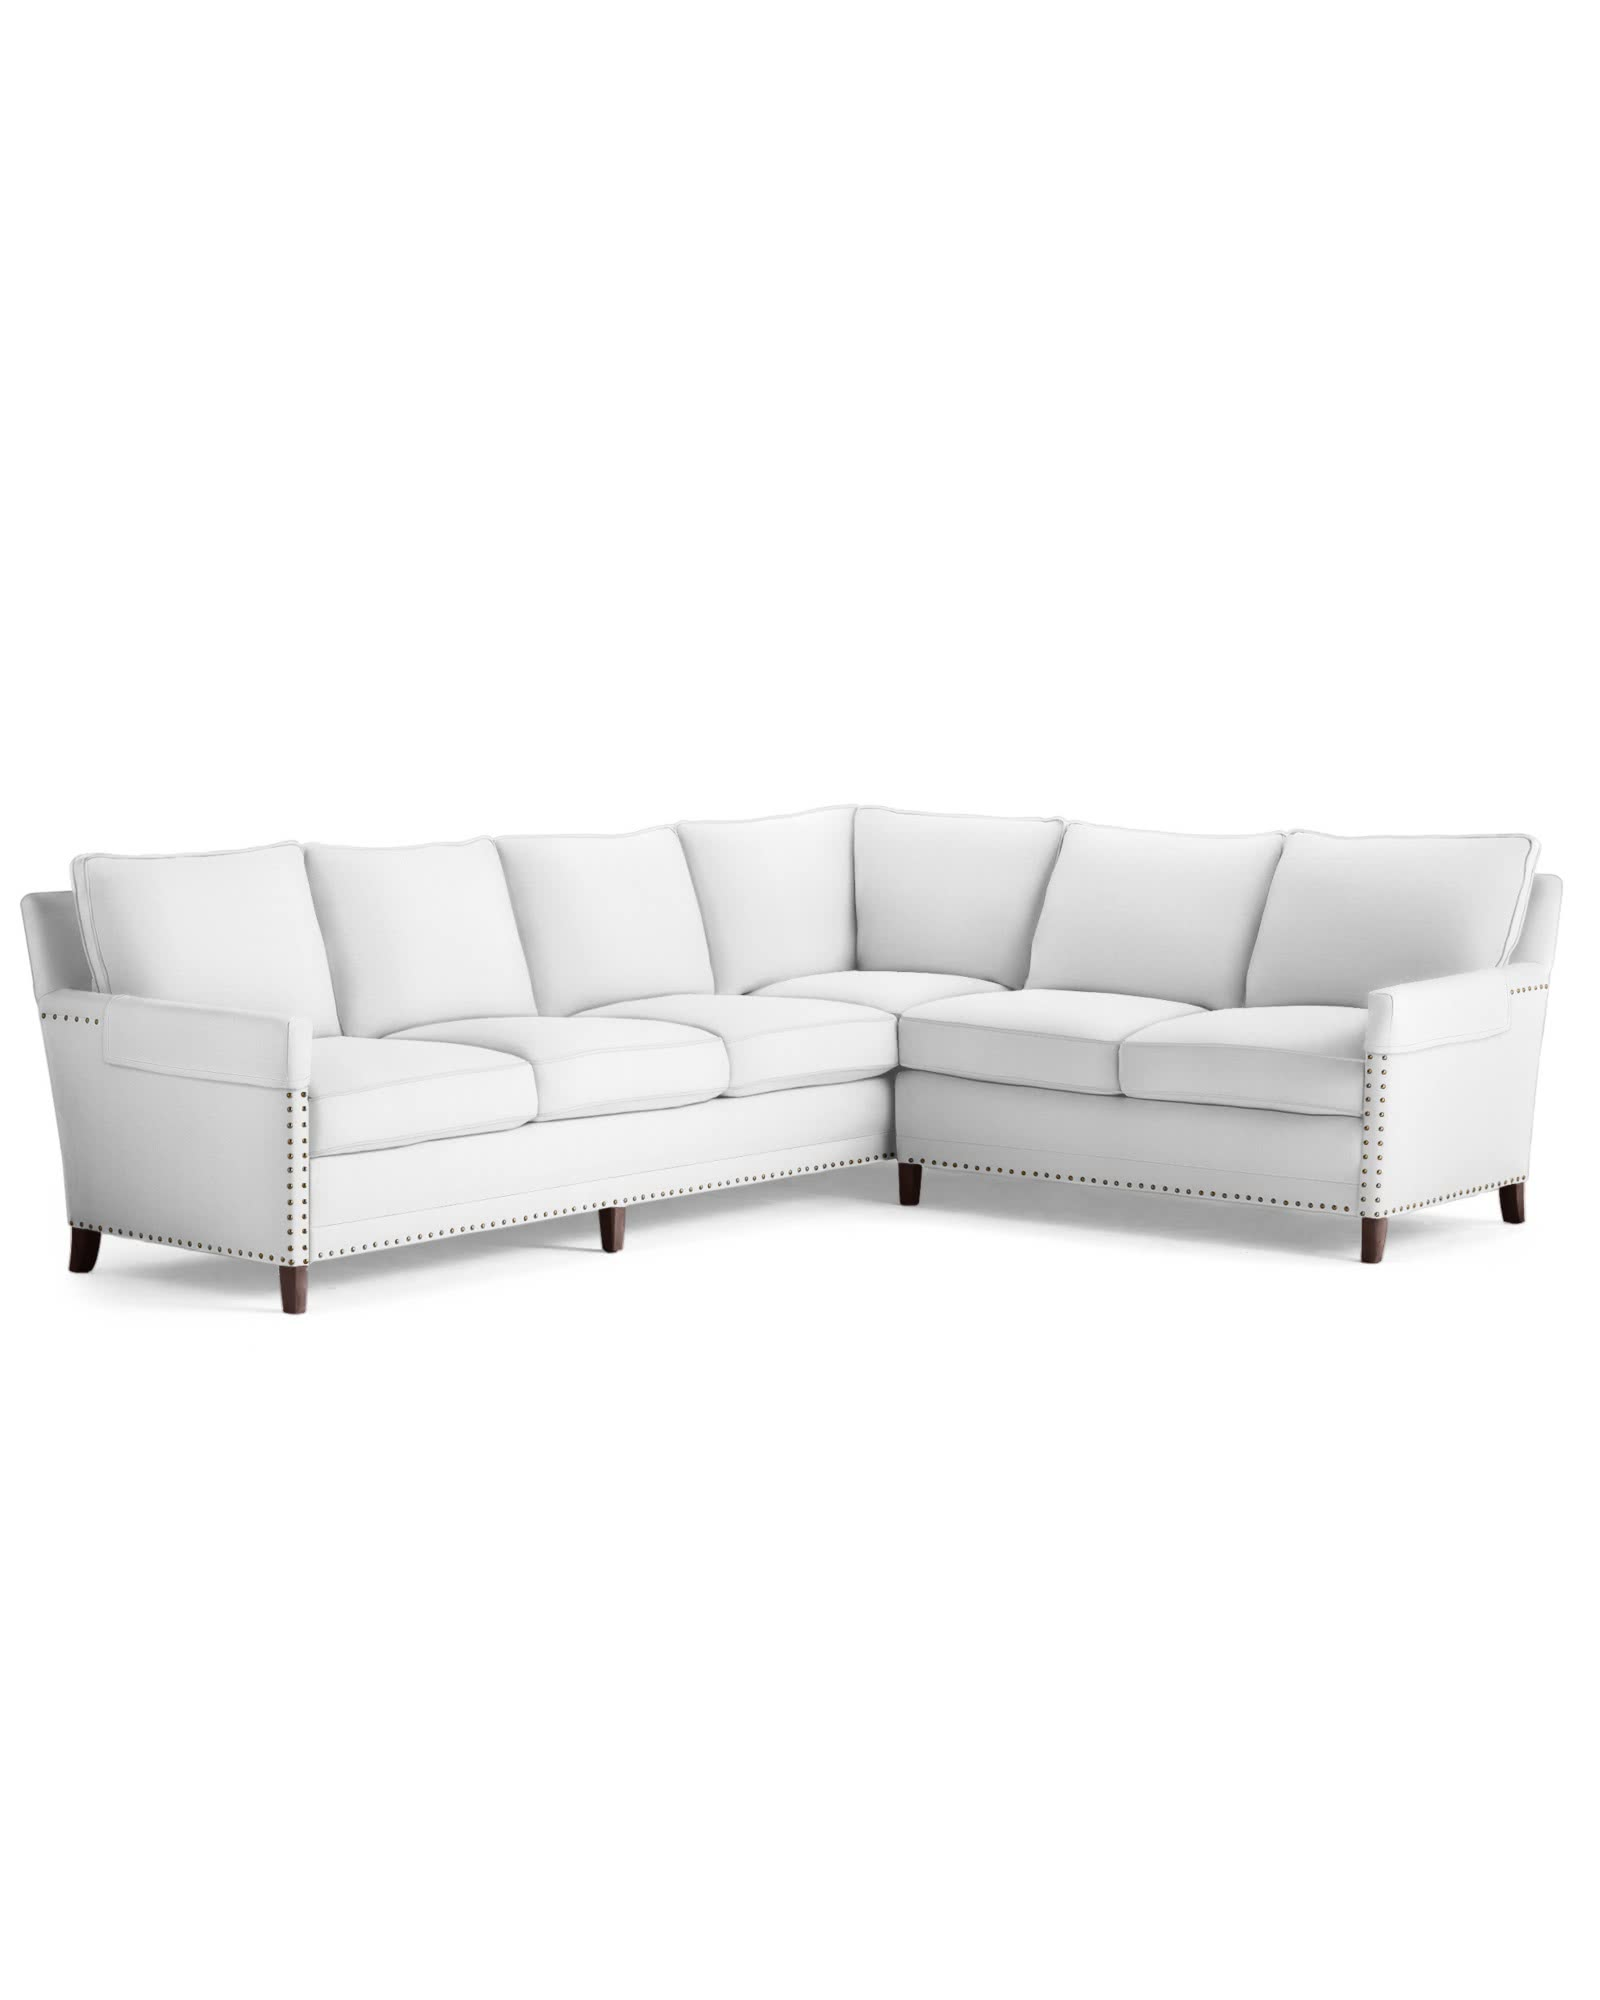 Spruce Street L-Sectional with Nailheads– Right-Facing